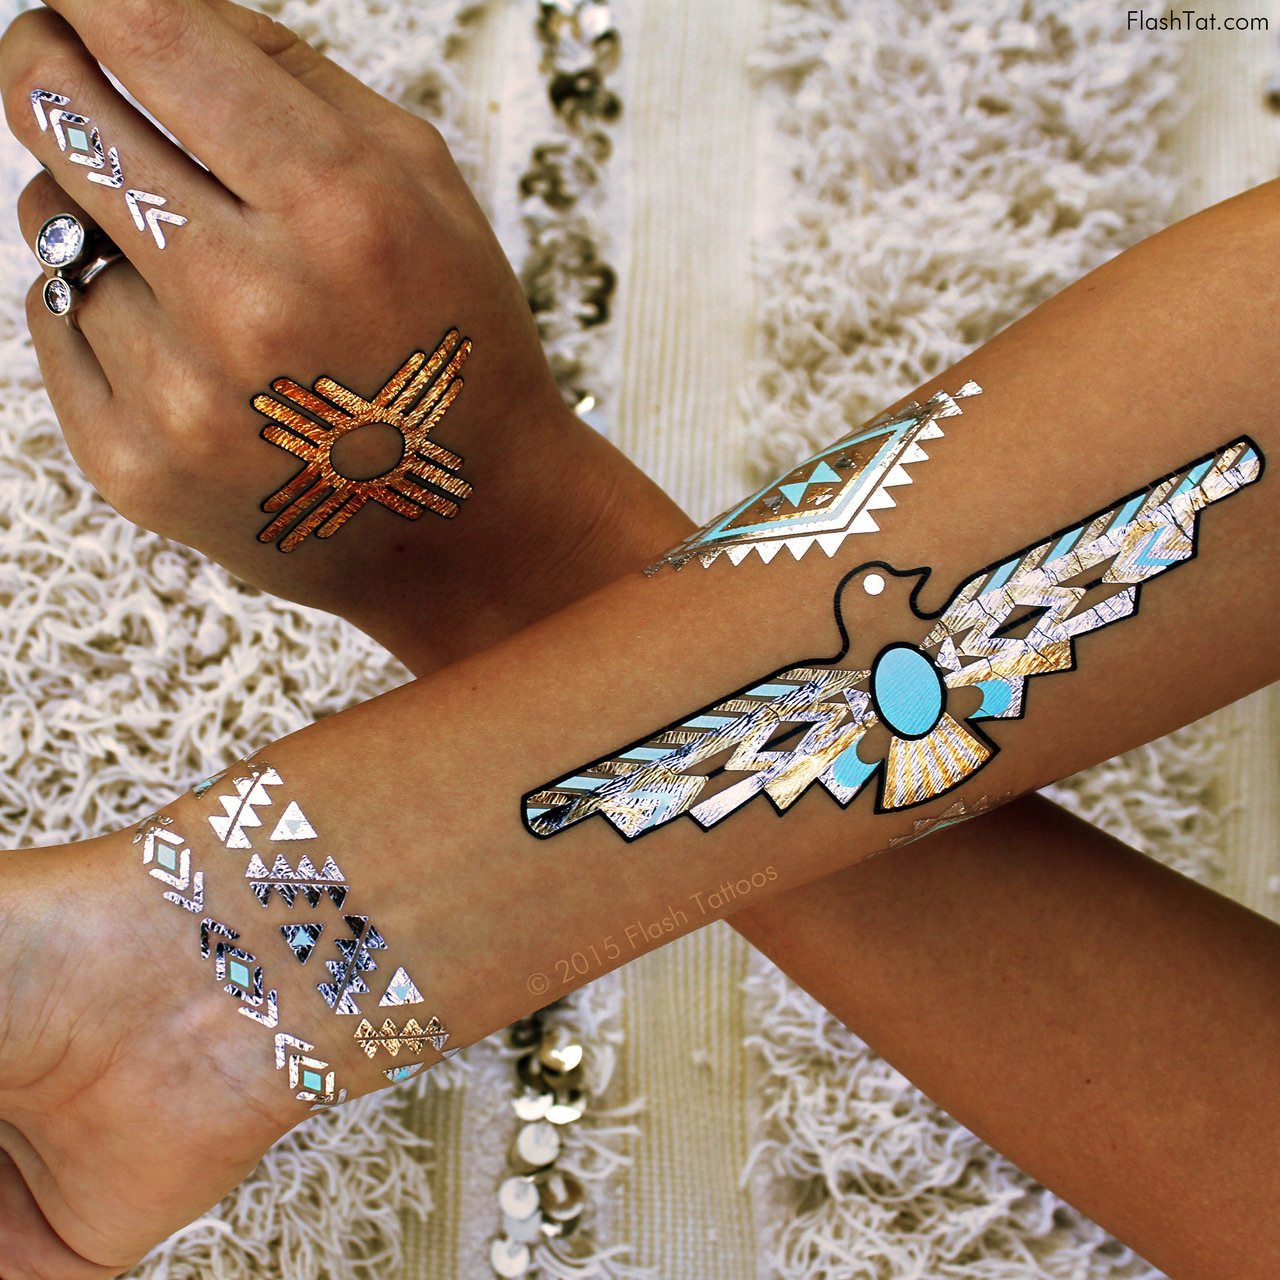 WILD CHILD BUNDLE from Flash Tattoos includes the Child of Wild pack (4-sheets) and Desert Dweller pack (4-sheets) over 70 premium festival inspired waterproof metallic temporary jewelry tattoos by Flash Tattoos (Image #4)